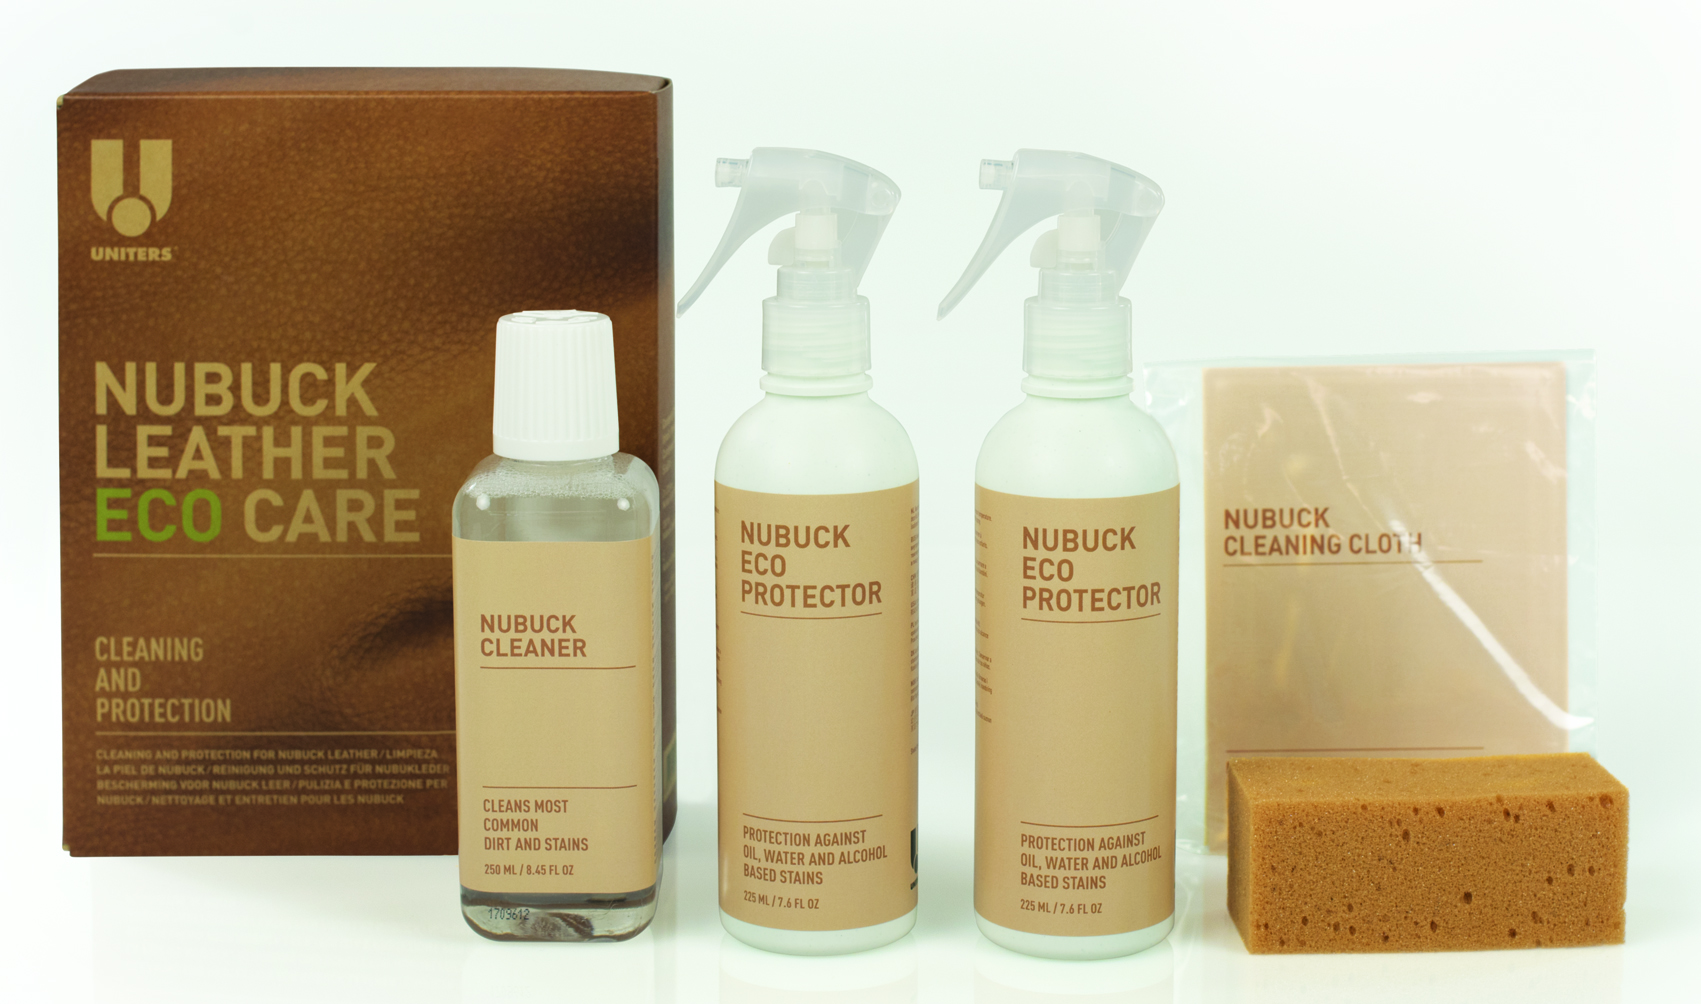 NUBUCK LEATHER ECO CARE KIT